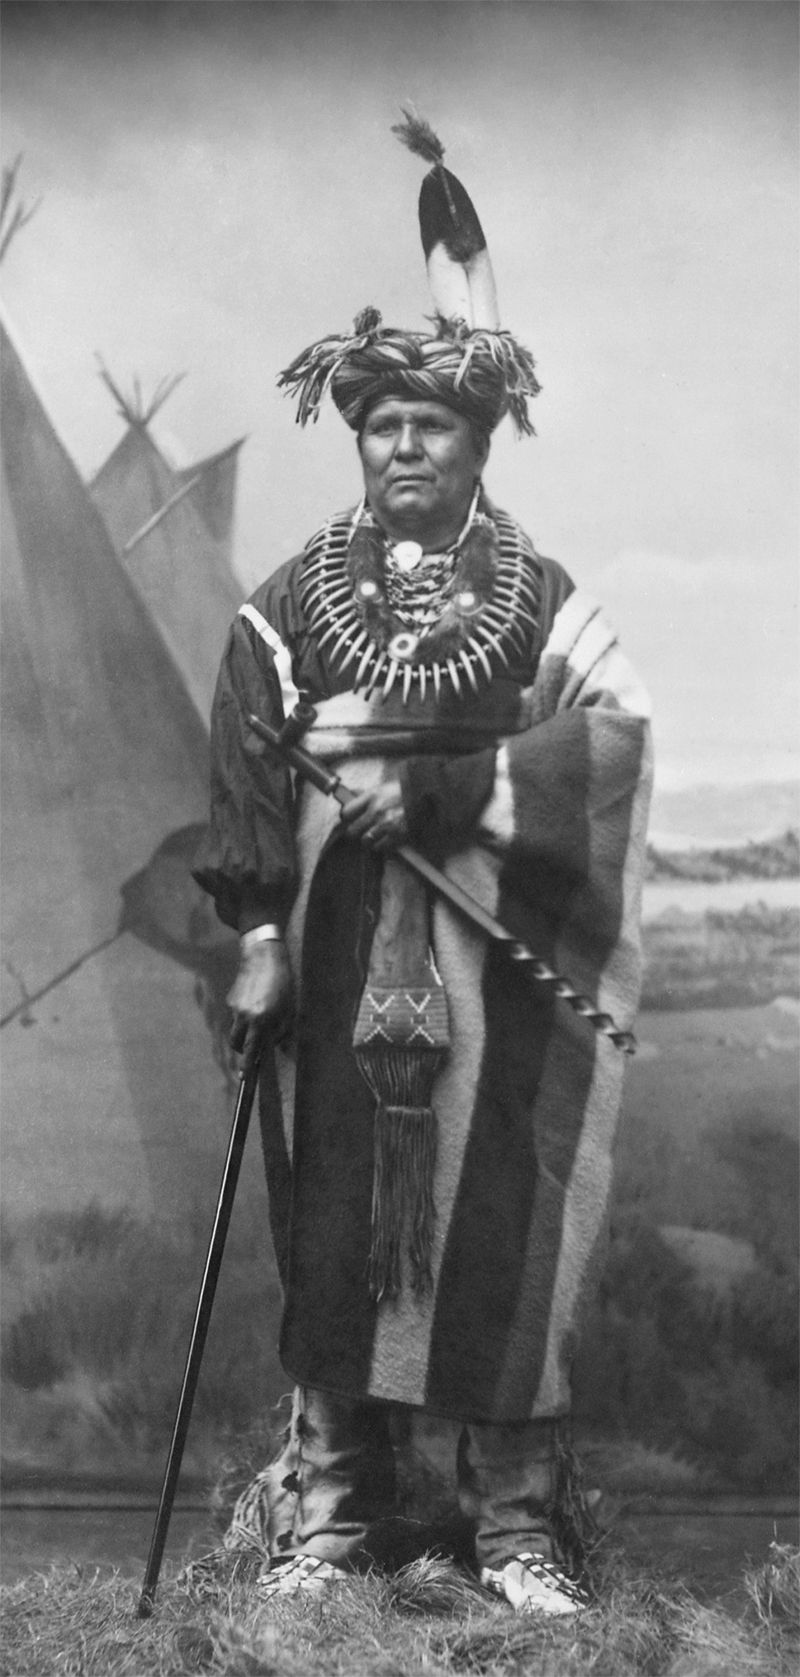 An old photograph of Sauk and Fox Chief [A].